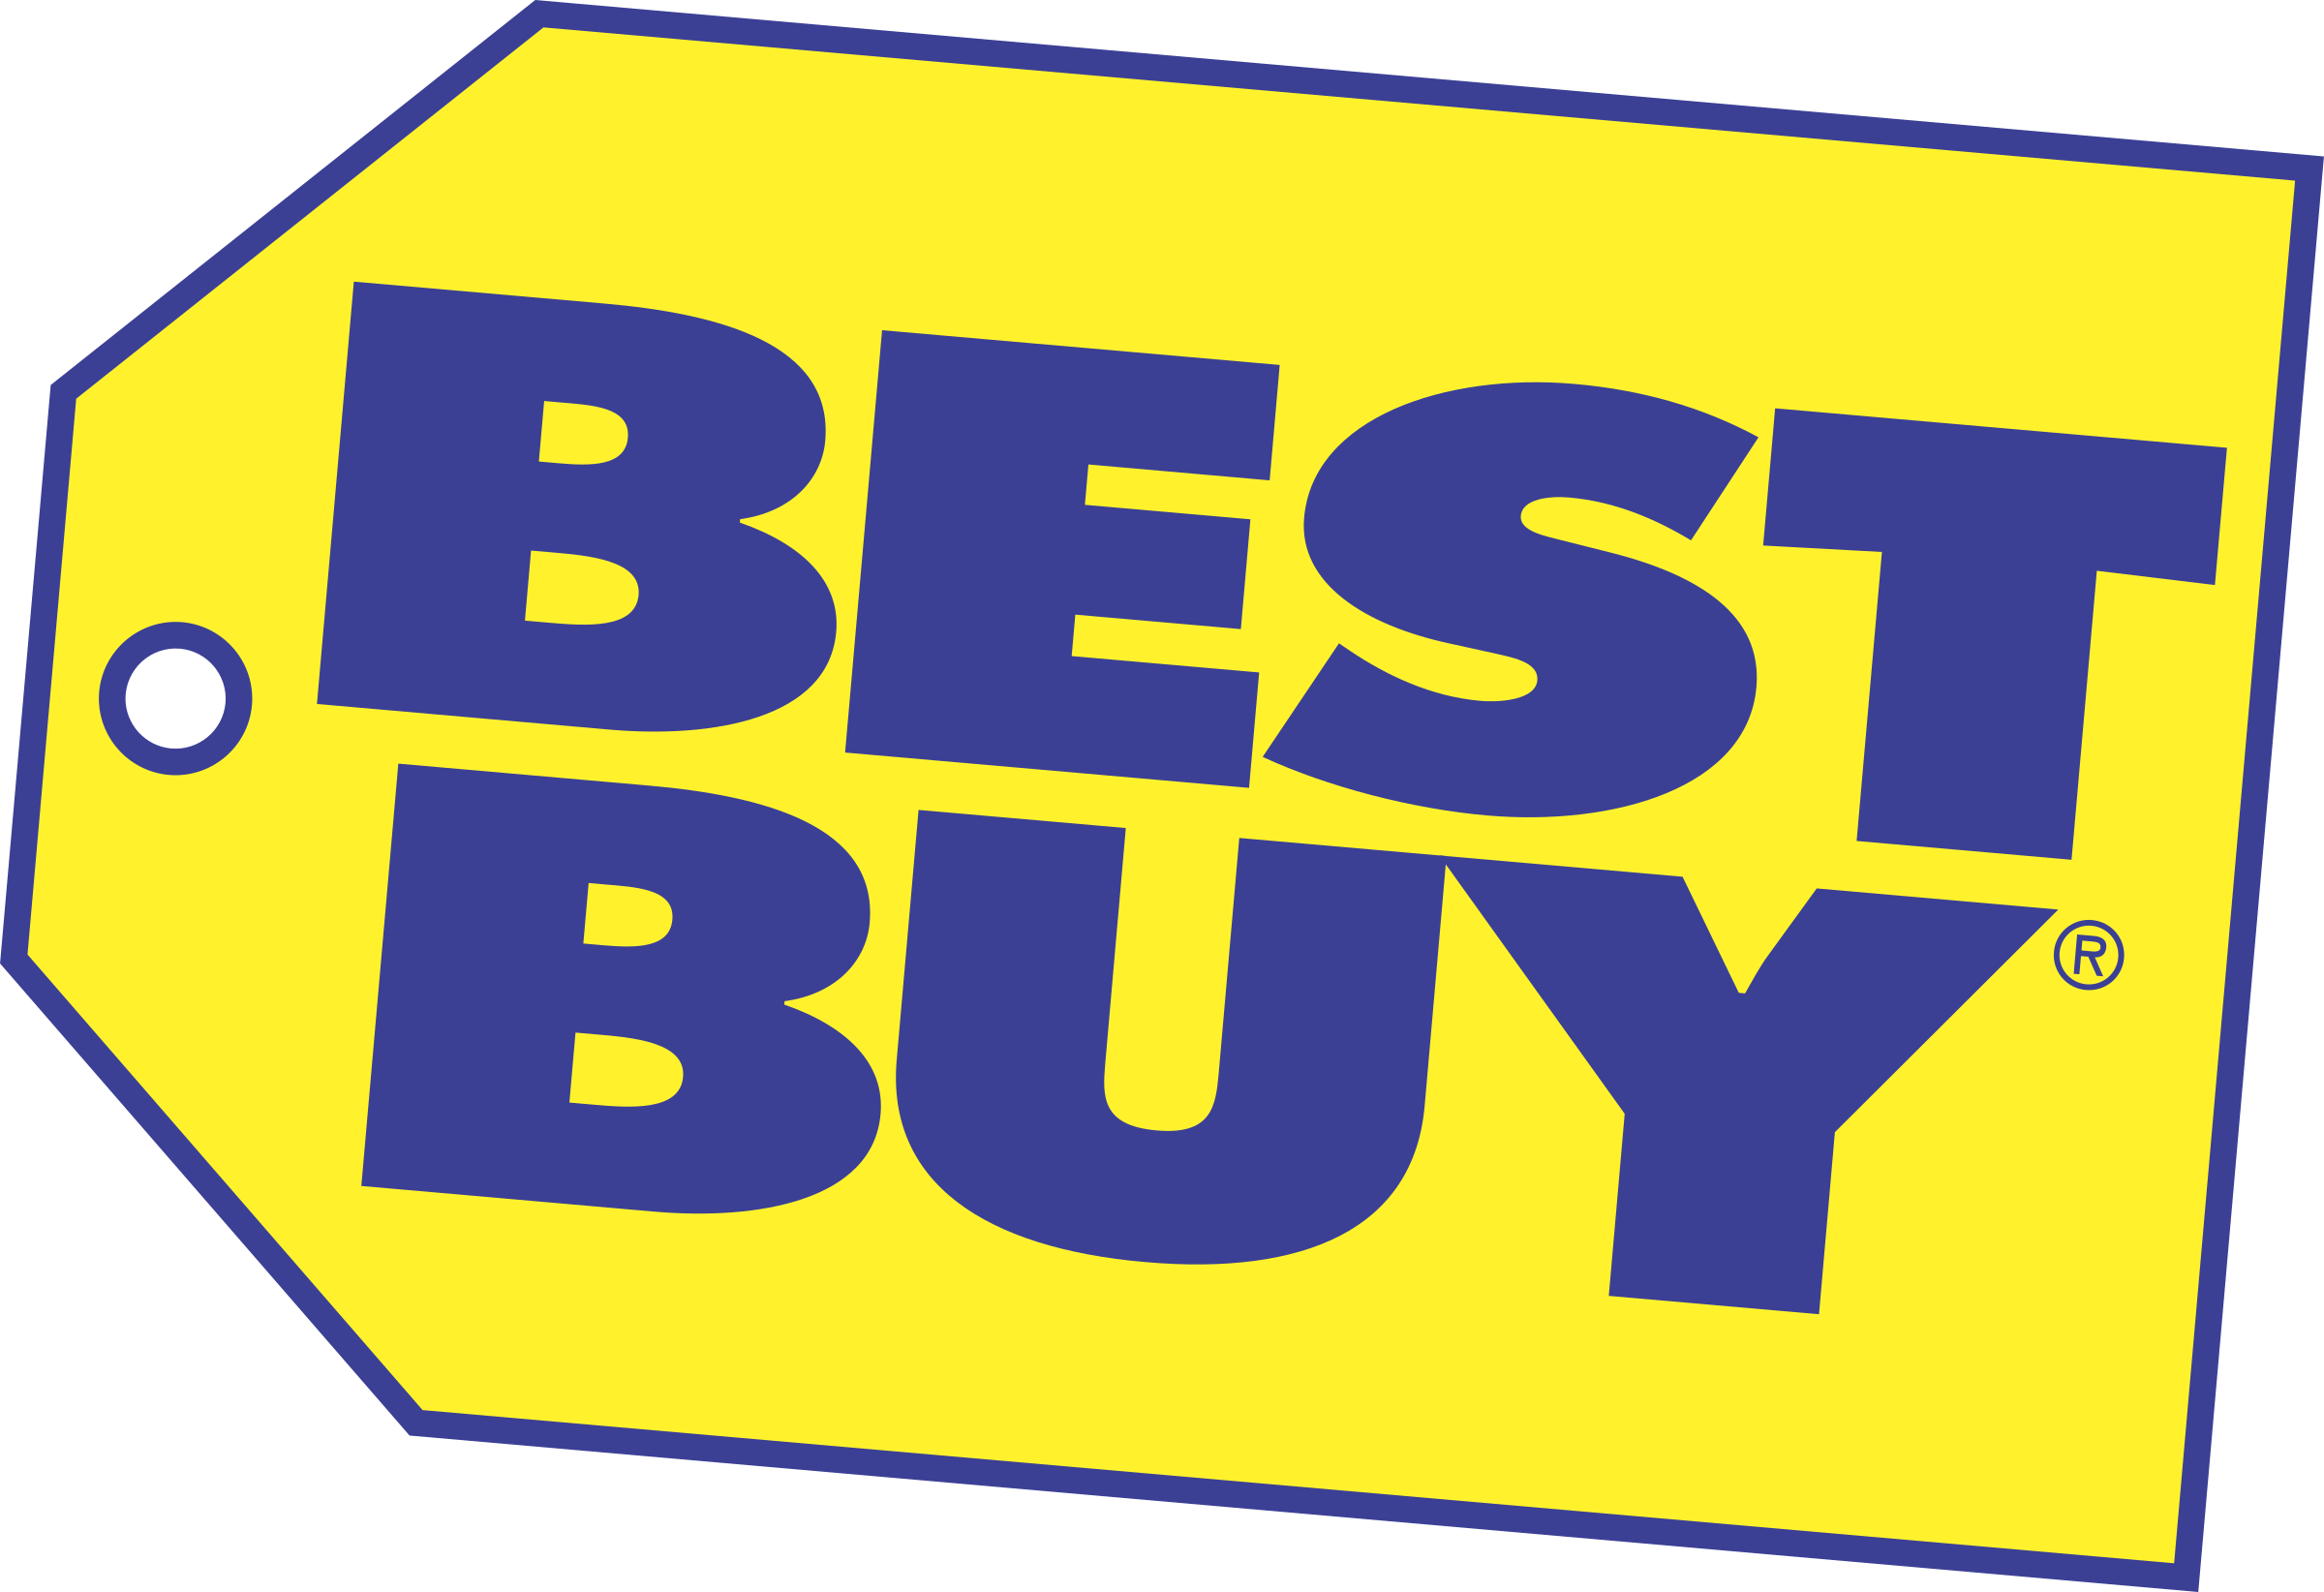 Best Buy Logo - BEST BUY 1 Logo PNG Transparent & SVG Vector - Freebie Supply